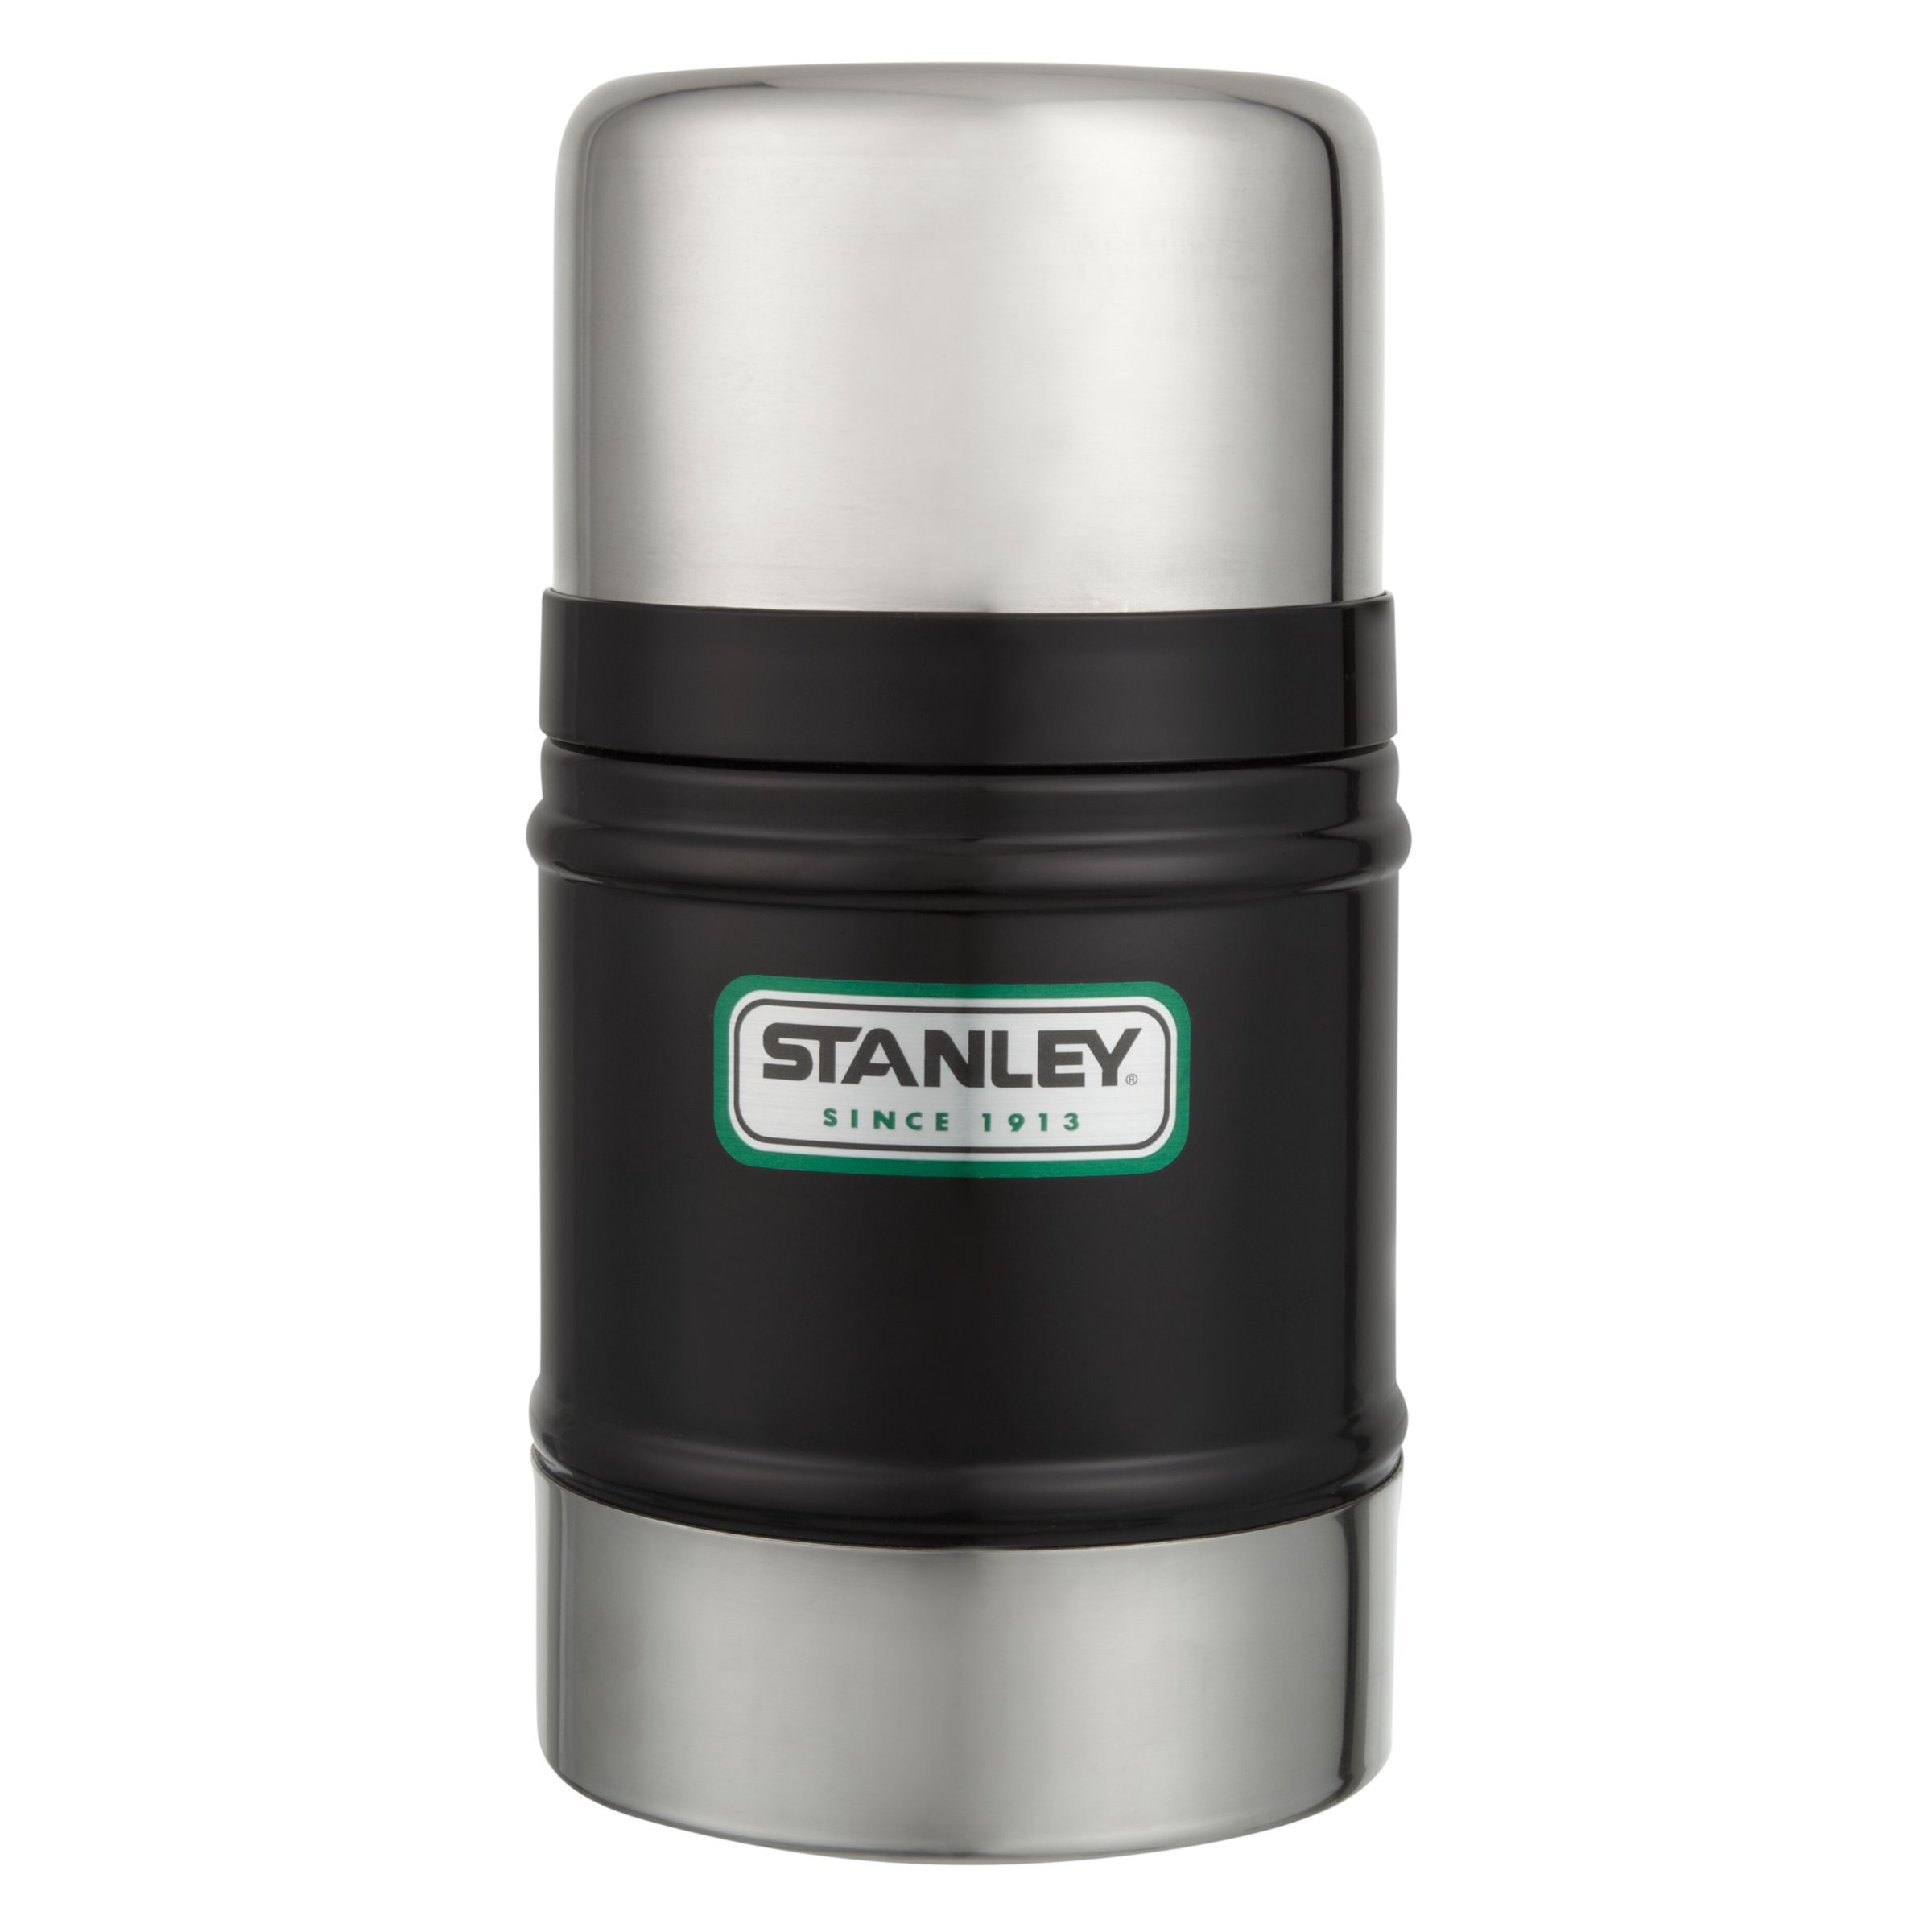 Stanley Classic Food Flask, 0.5L